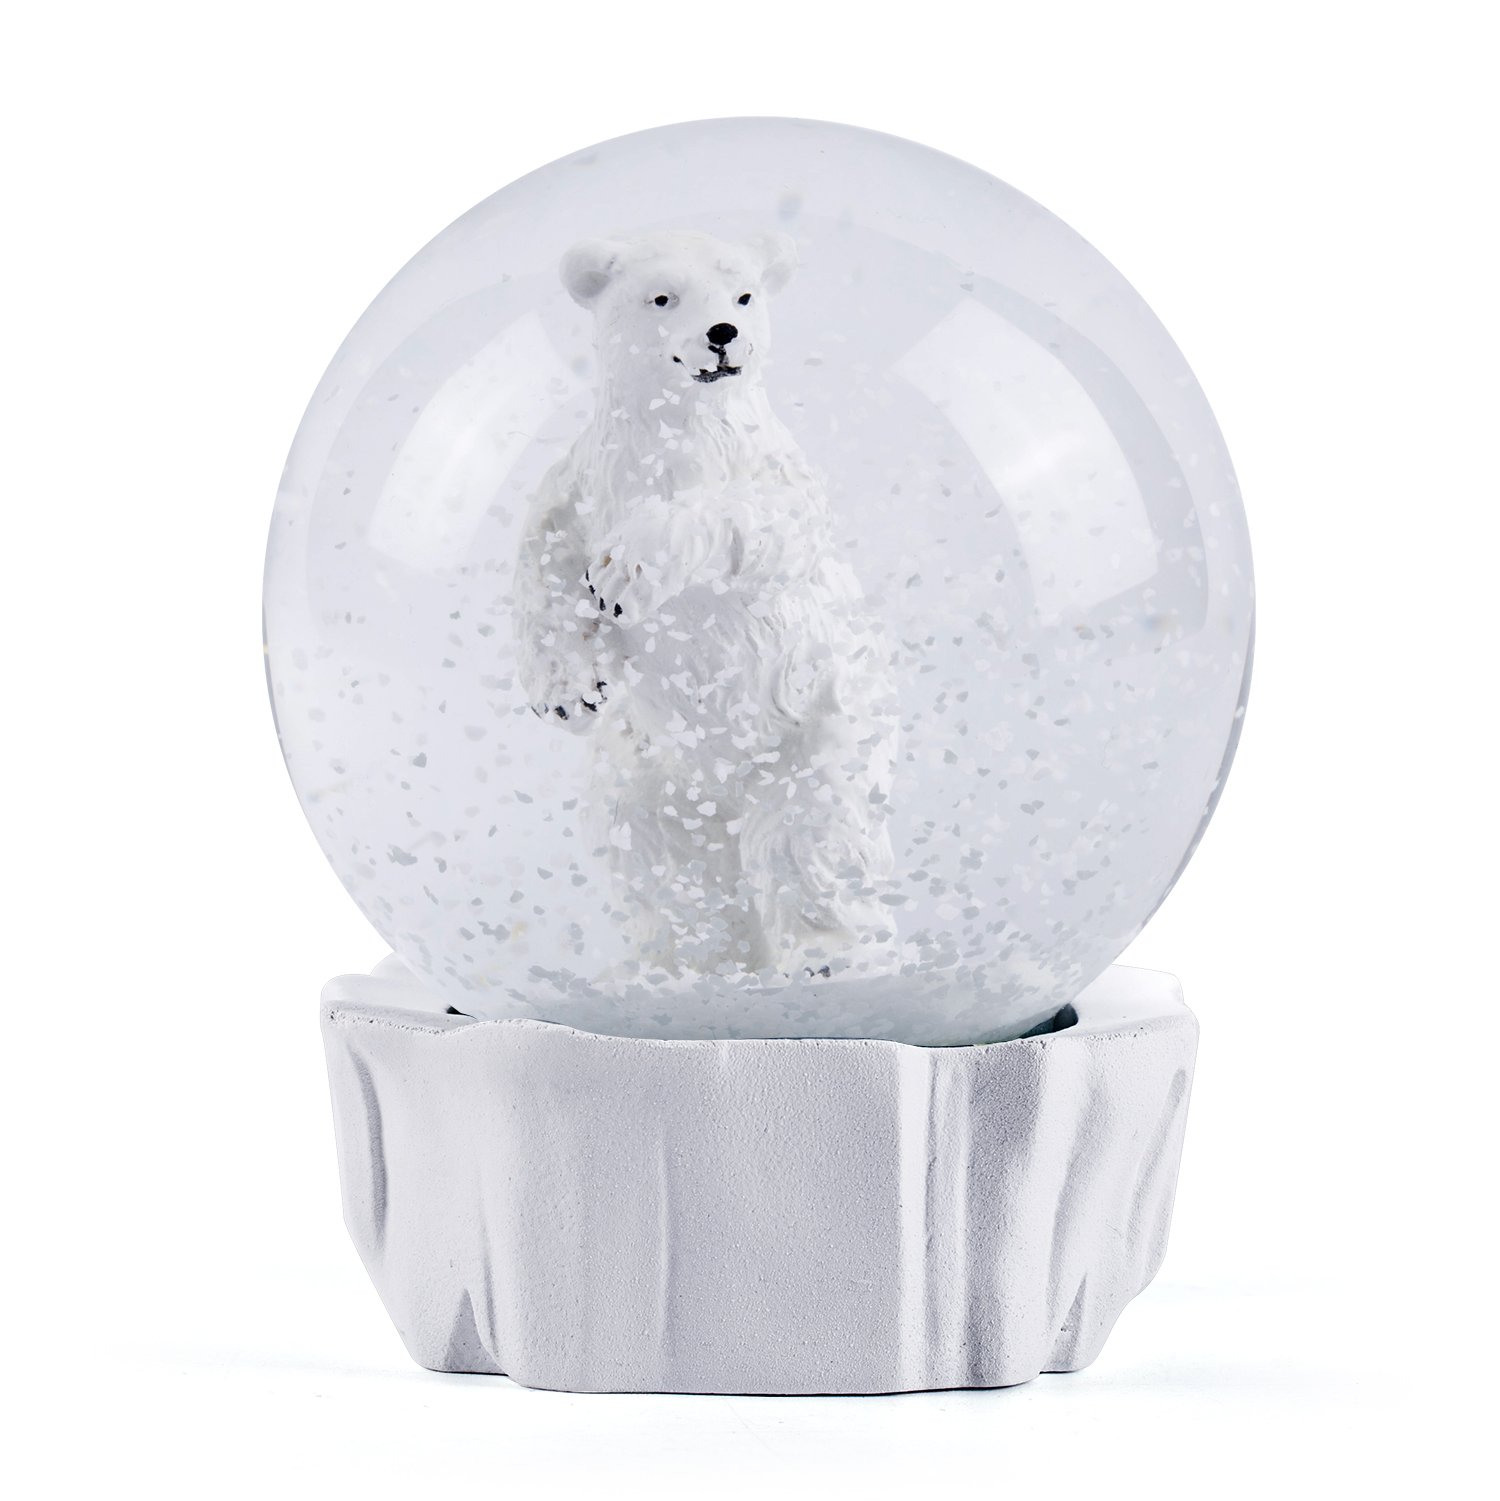 WOBAOS Snow Globe crafts- Sculptured Resin Water Ball - Christmas Valentine's day birthday holiday new year's gift (Diameter 80mm, White)